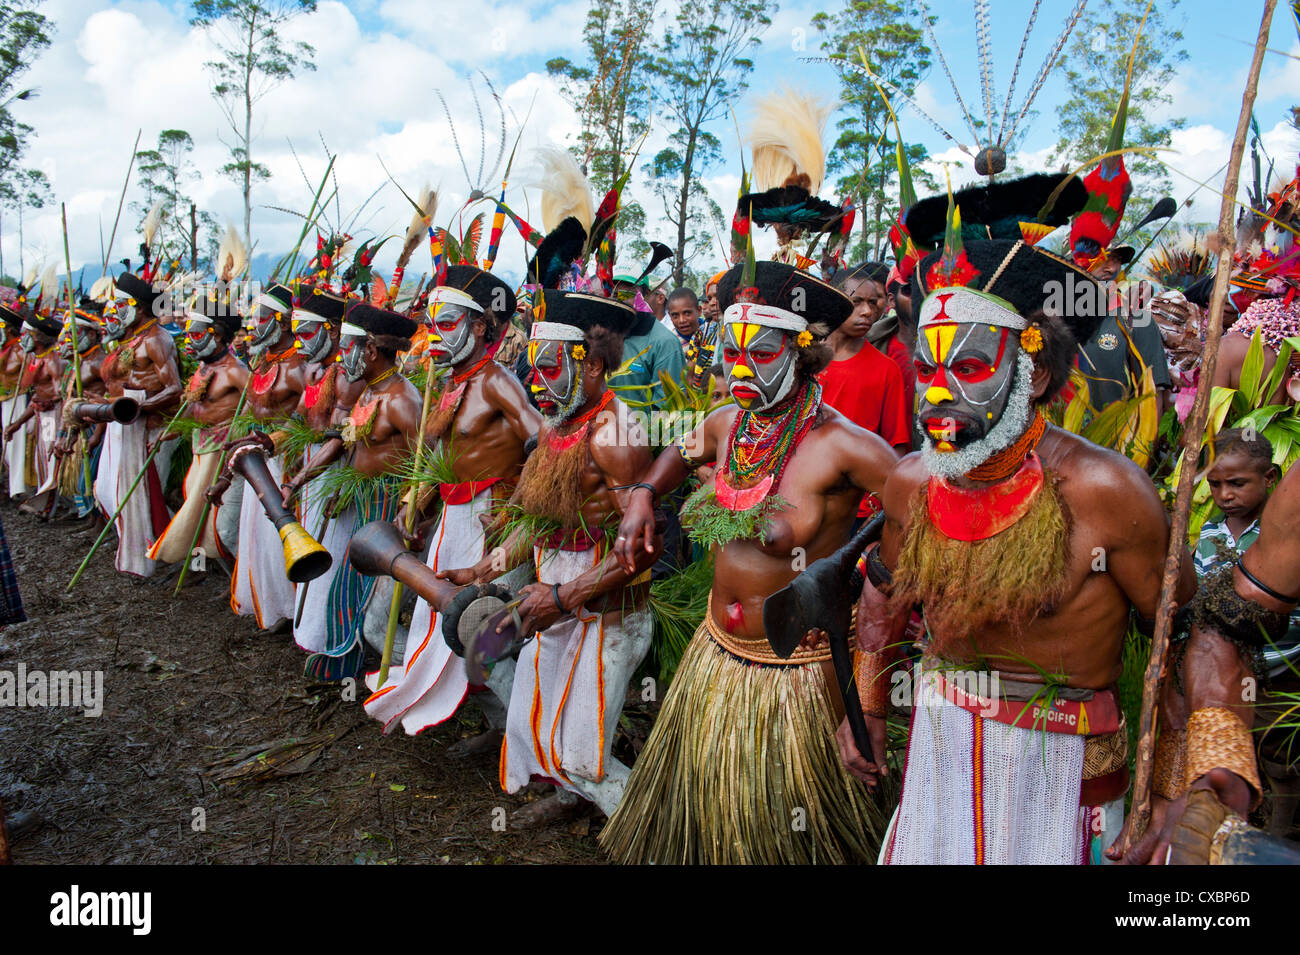 Colourfully dressed and face painted local tribes celebrating the traditional Sing Sing in the Highlands of Papua - Stock Image